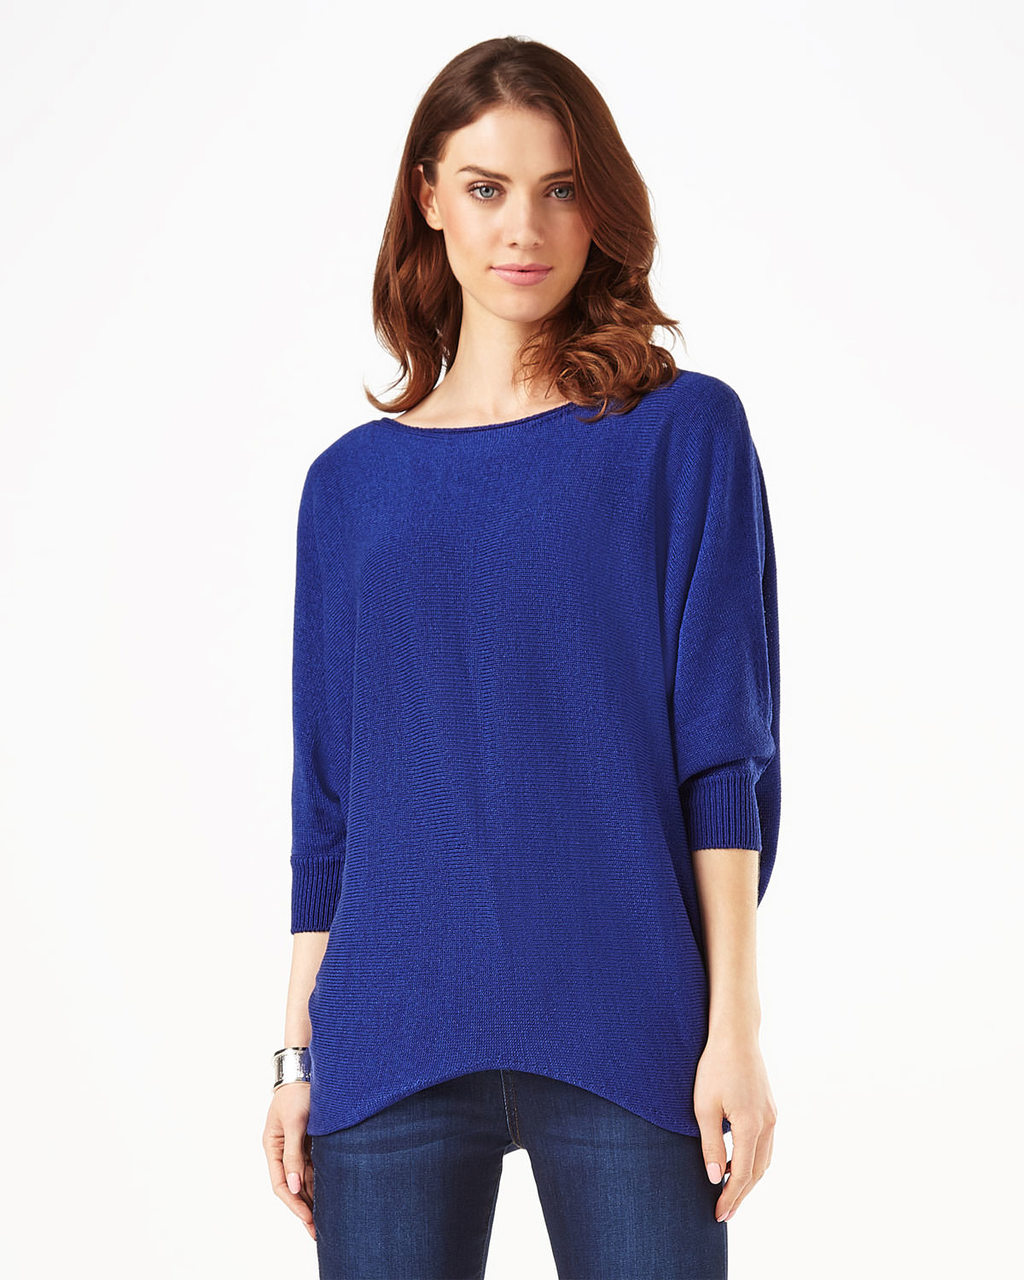 Tape Yarn Becca Batwing Jumper - neckline: round neck; sleeve style: dolman/batwing; pattern: plain; length: below the bottom; style: standard; predominant colour: royal blue; occasions: casual; fibres: acrylic - mix; fit: loose; sleeve length: 3/4 length; texture group: knits/crochet; pattern type: knitted - fine stitch; season: s/s 2016